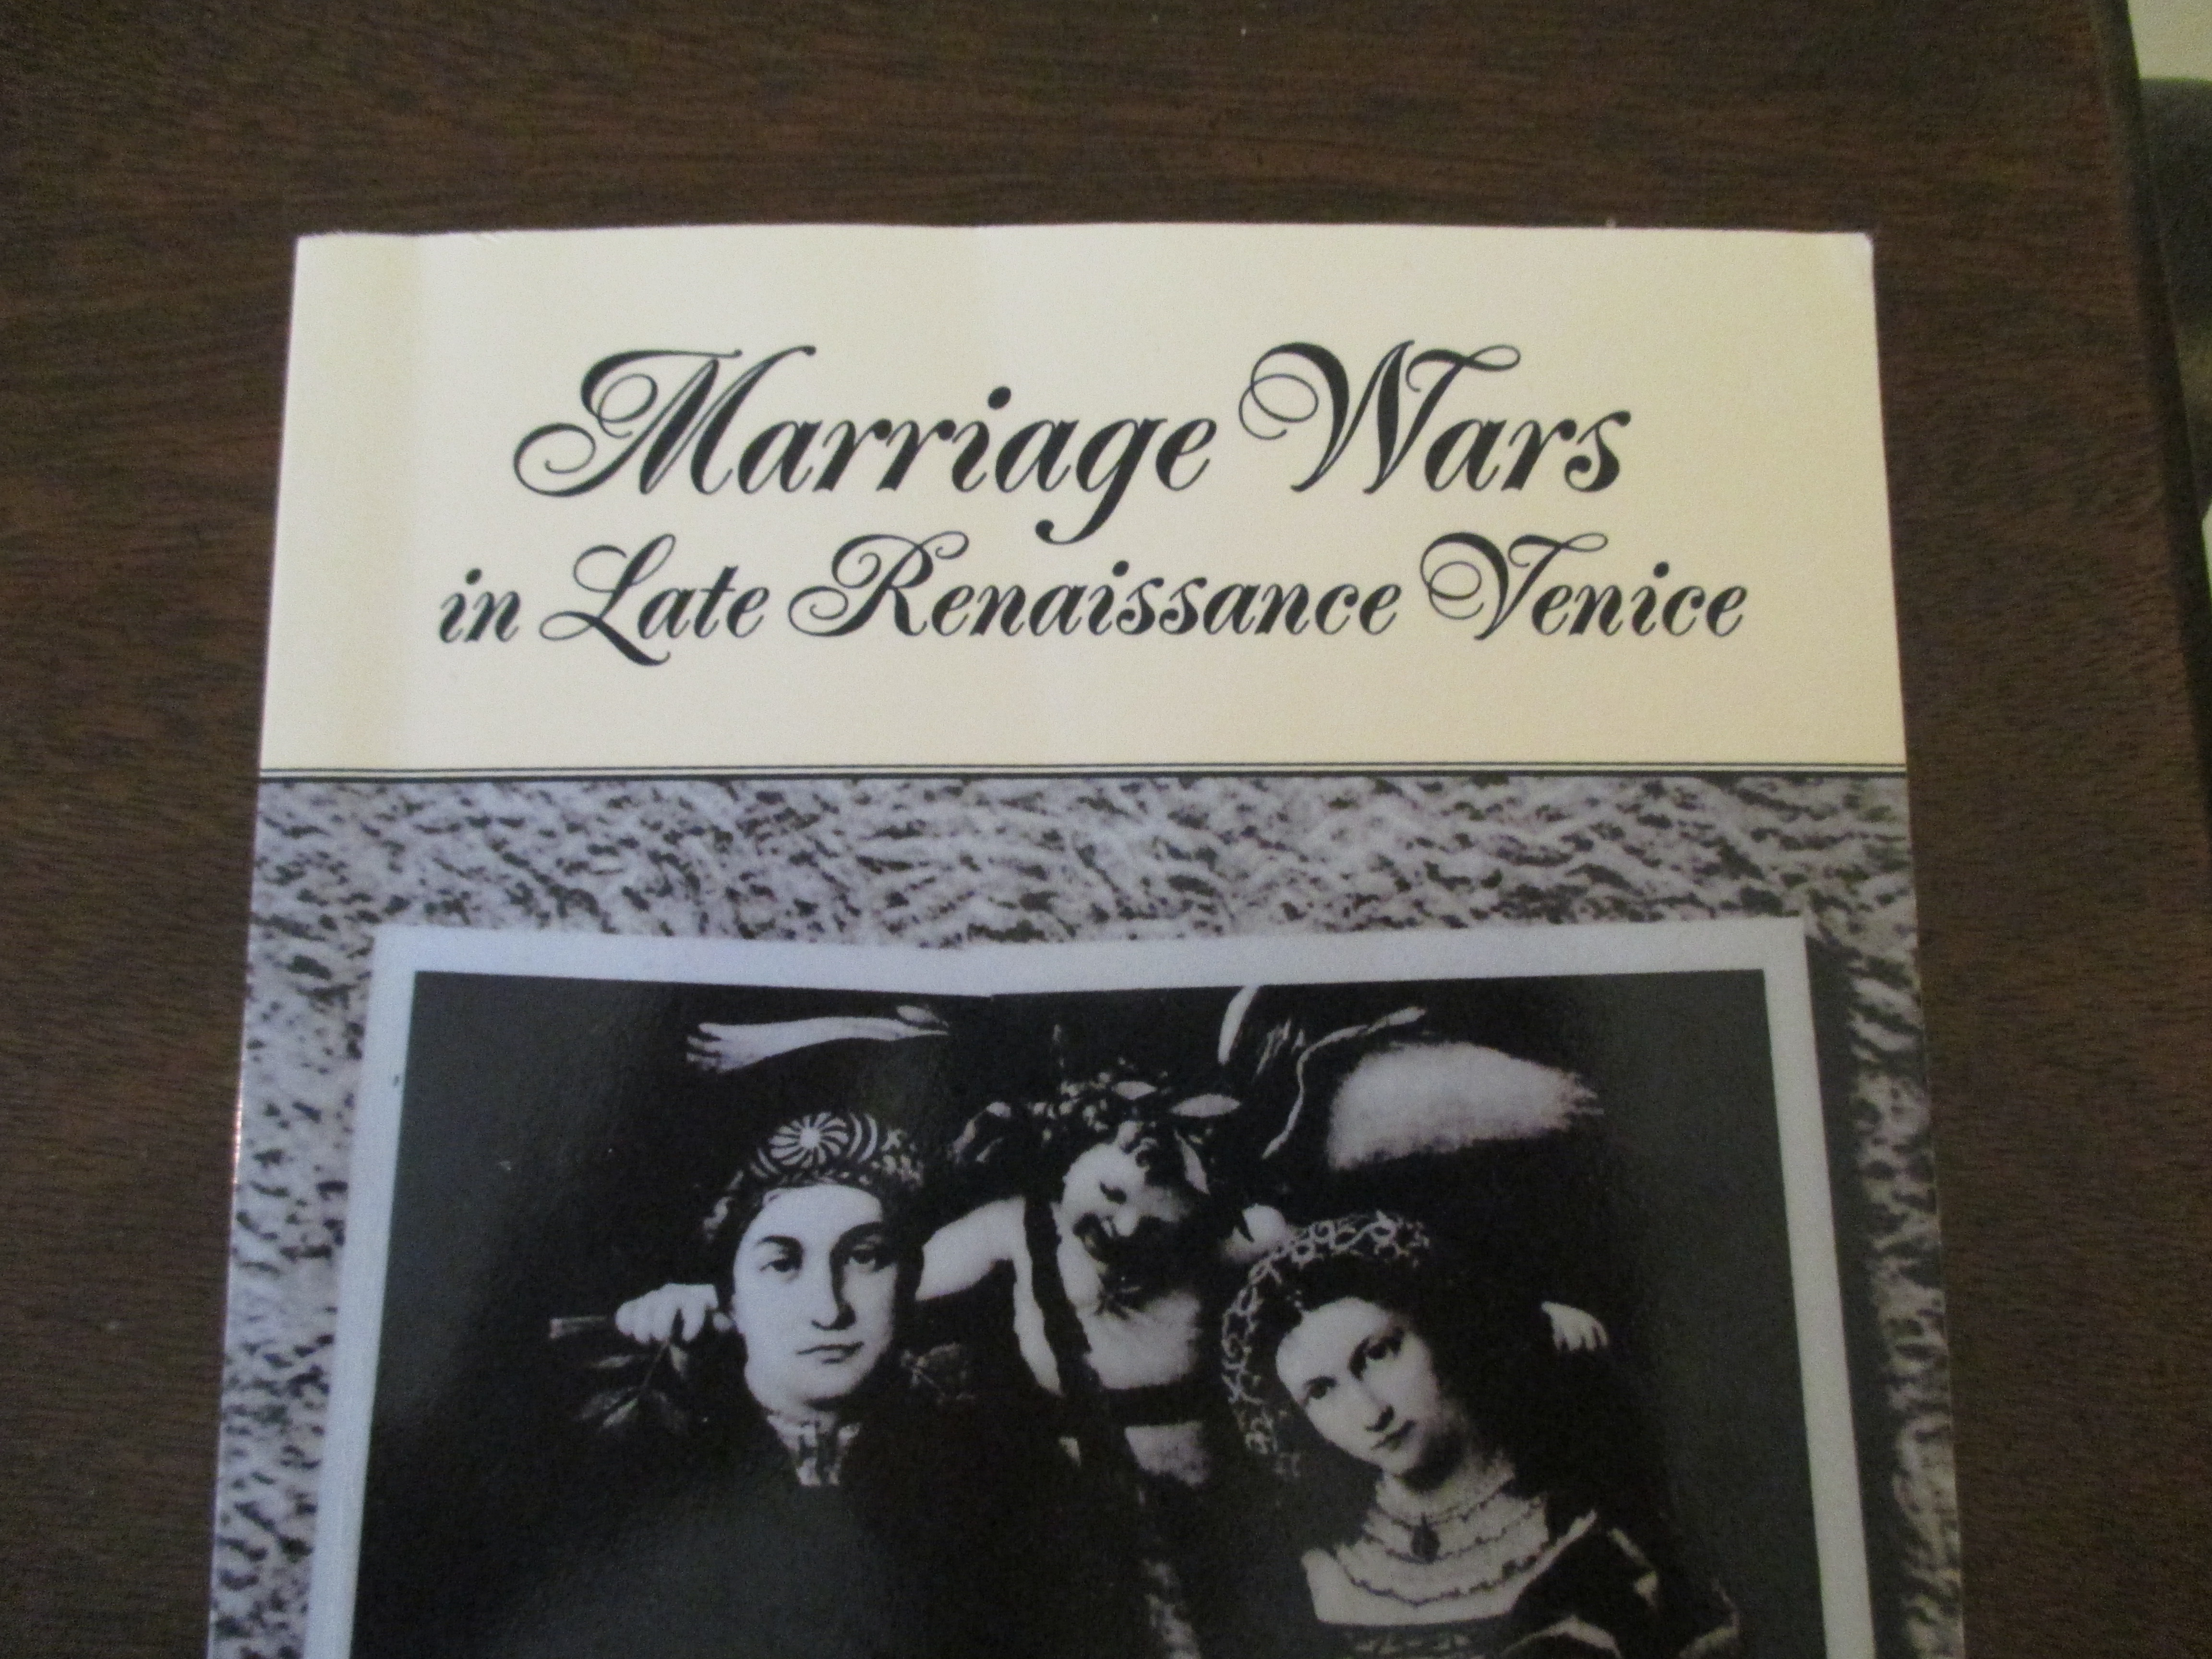 Marriage Wars in Late Renaissance Venice